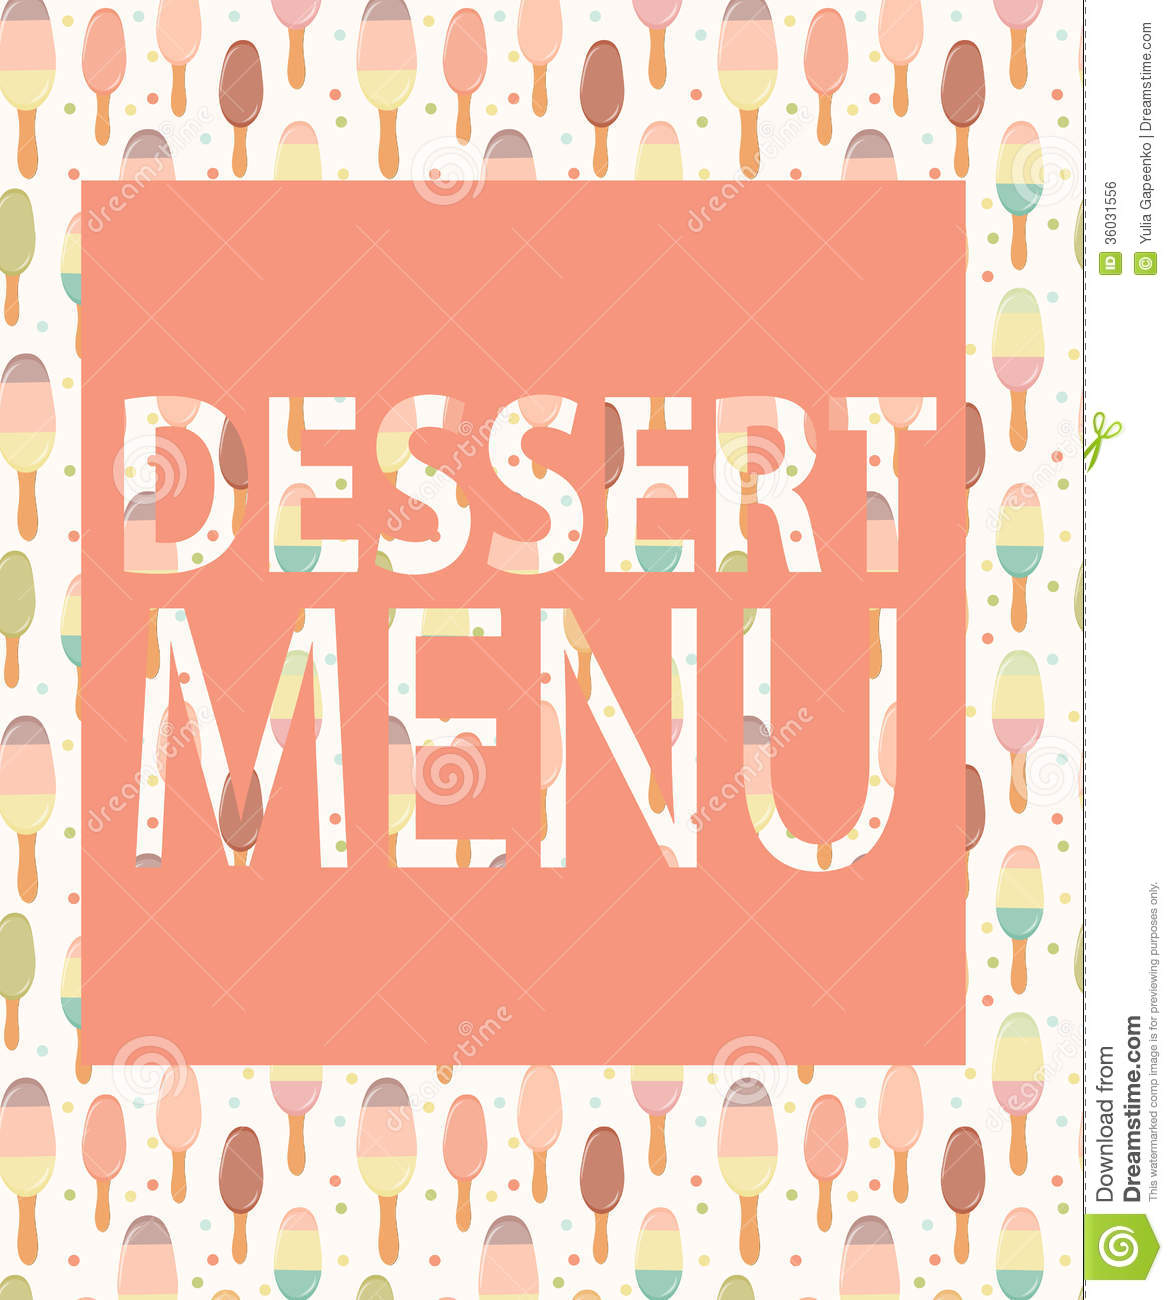 Perfect Dessert Menu Template. Vector Illustration Regarding Dessert Menu Template